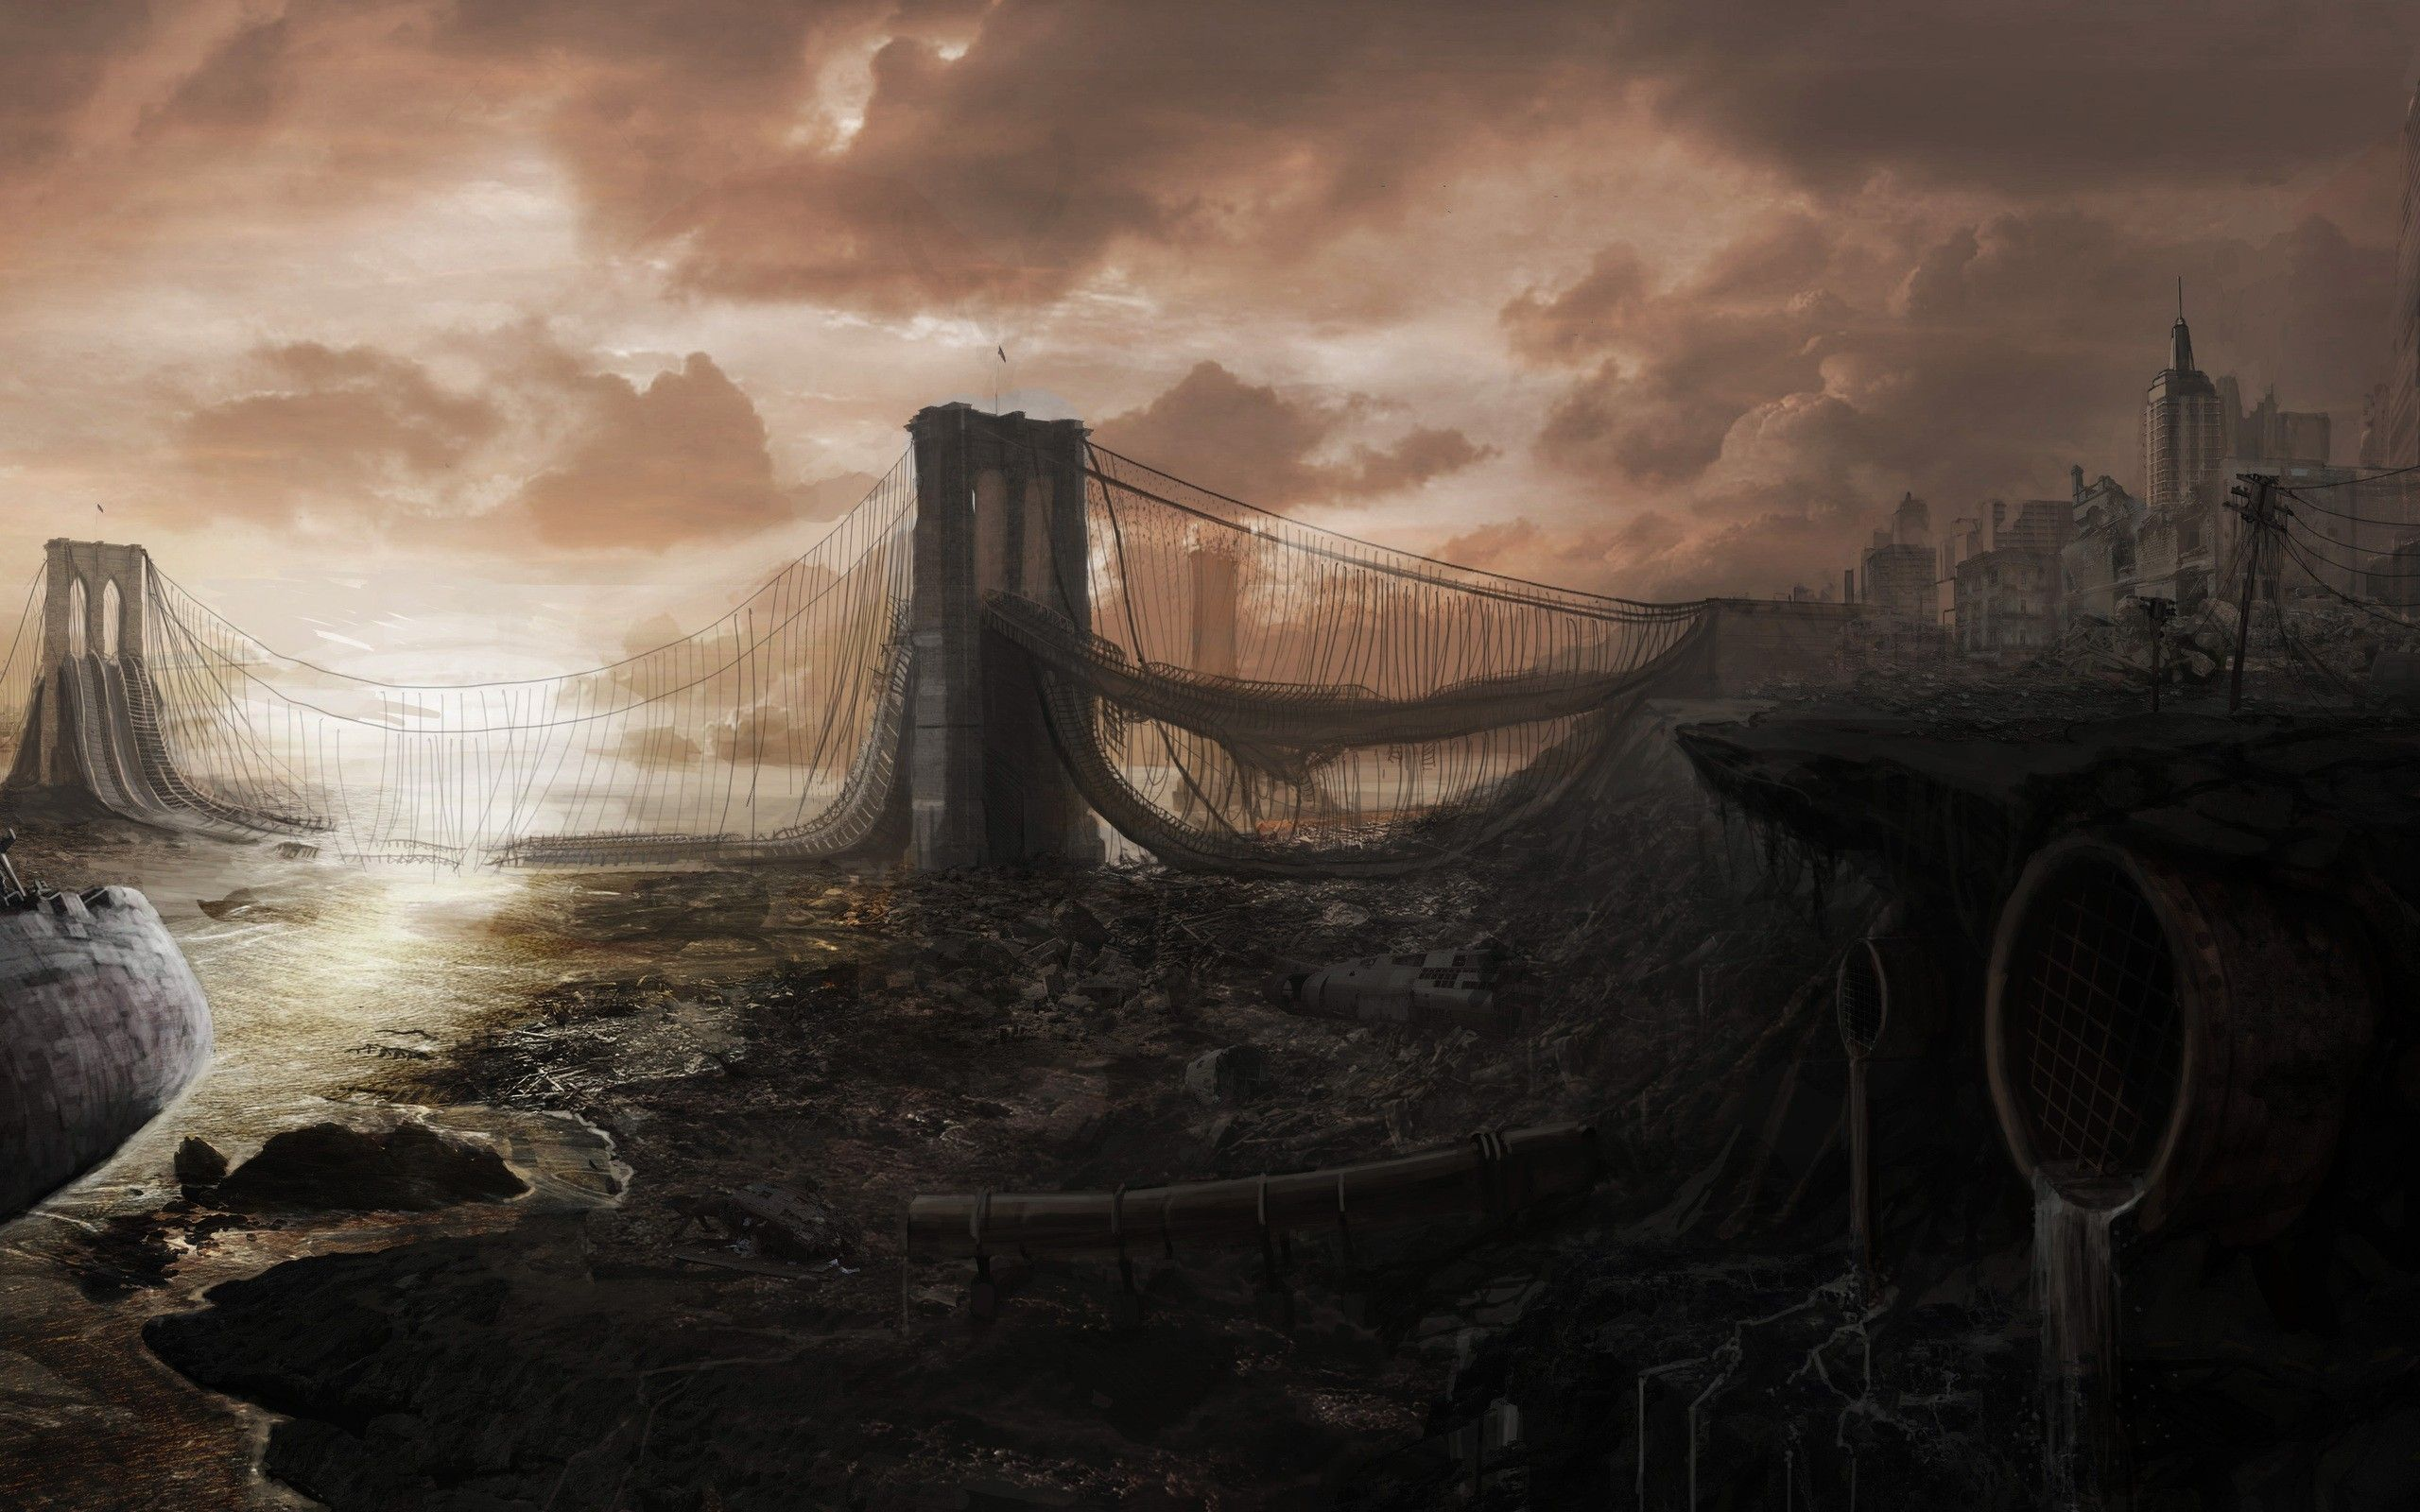 Post Apocalyptic Dystopian Wallpaper Dump As Requested By Rayquazasdarkbrother Post Apocalyptic Art Post Apocalyptic City Artwork